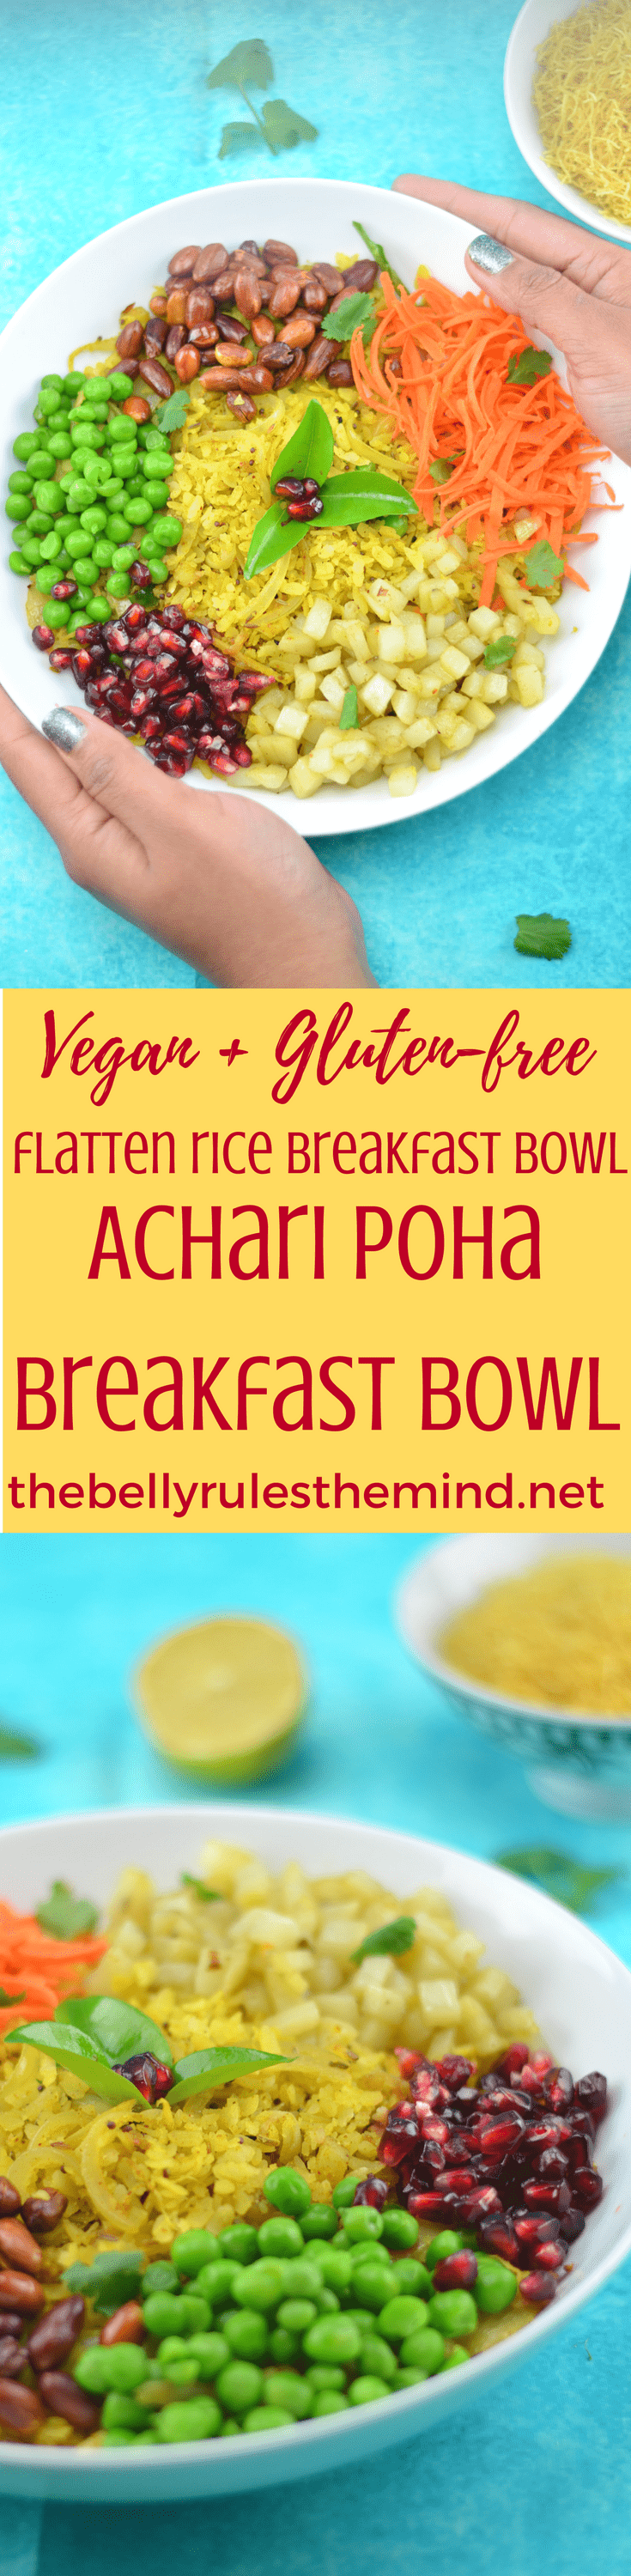 Achari Poha Breakfast Bowl- A perfect breakfast recipe made with flattened rice seasoned with flavorful Achari spice & loads of colorful veggies.</strong><strong>A super-fast recipe to soothe away those untimely hunger attacks!.Vegan.|https;//www.thebellyrulestheind.net @bellyrulesdmind